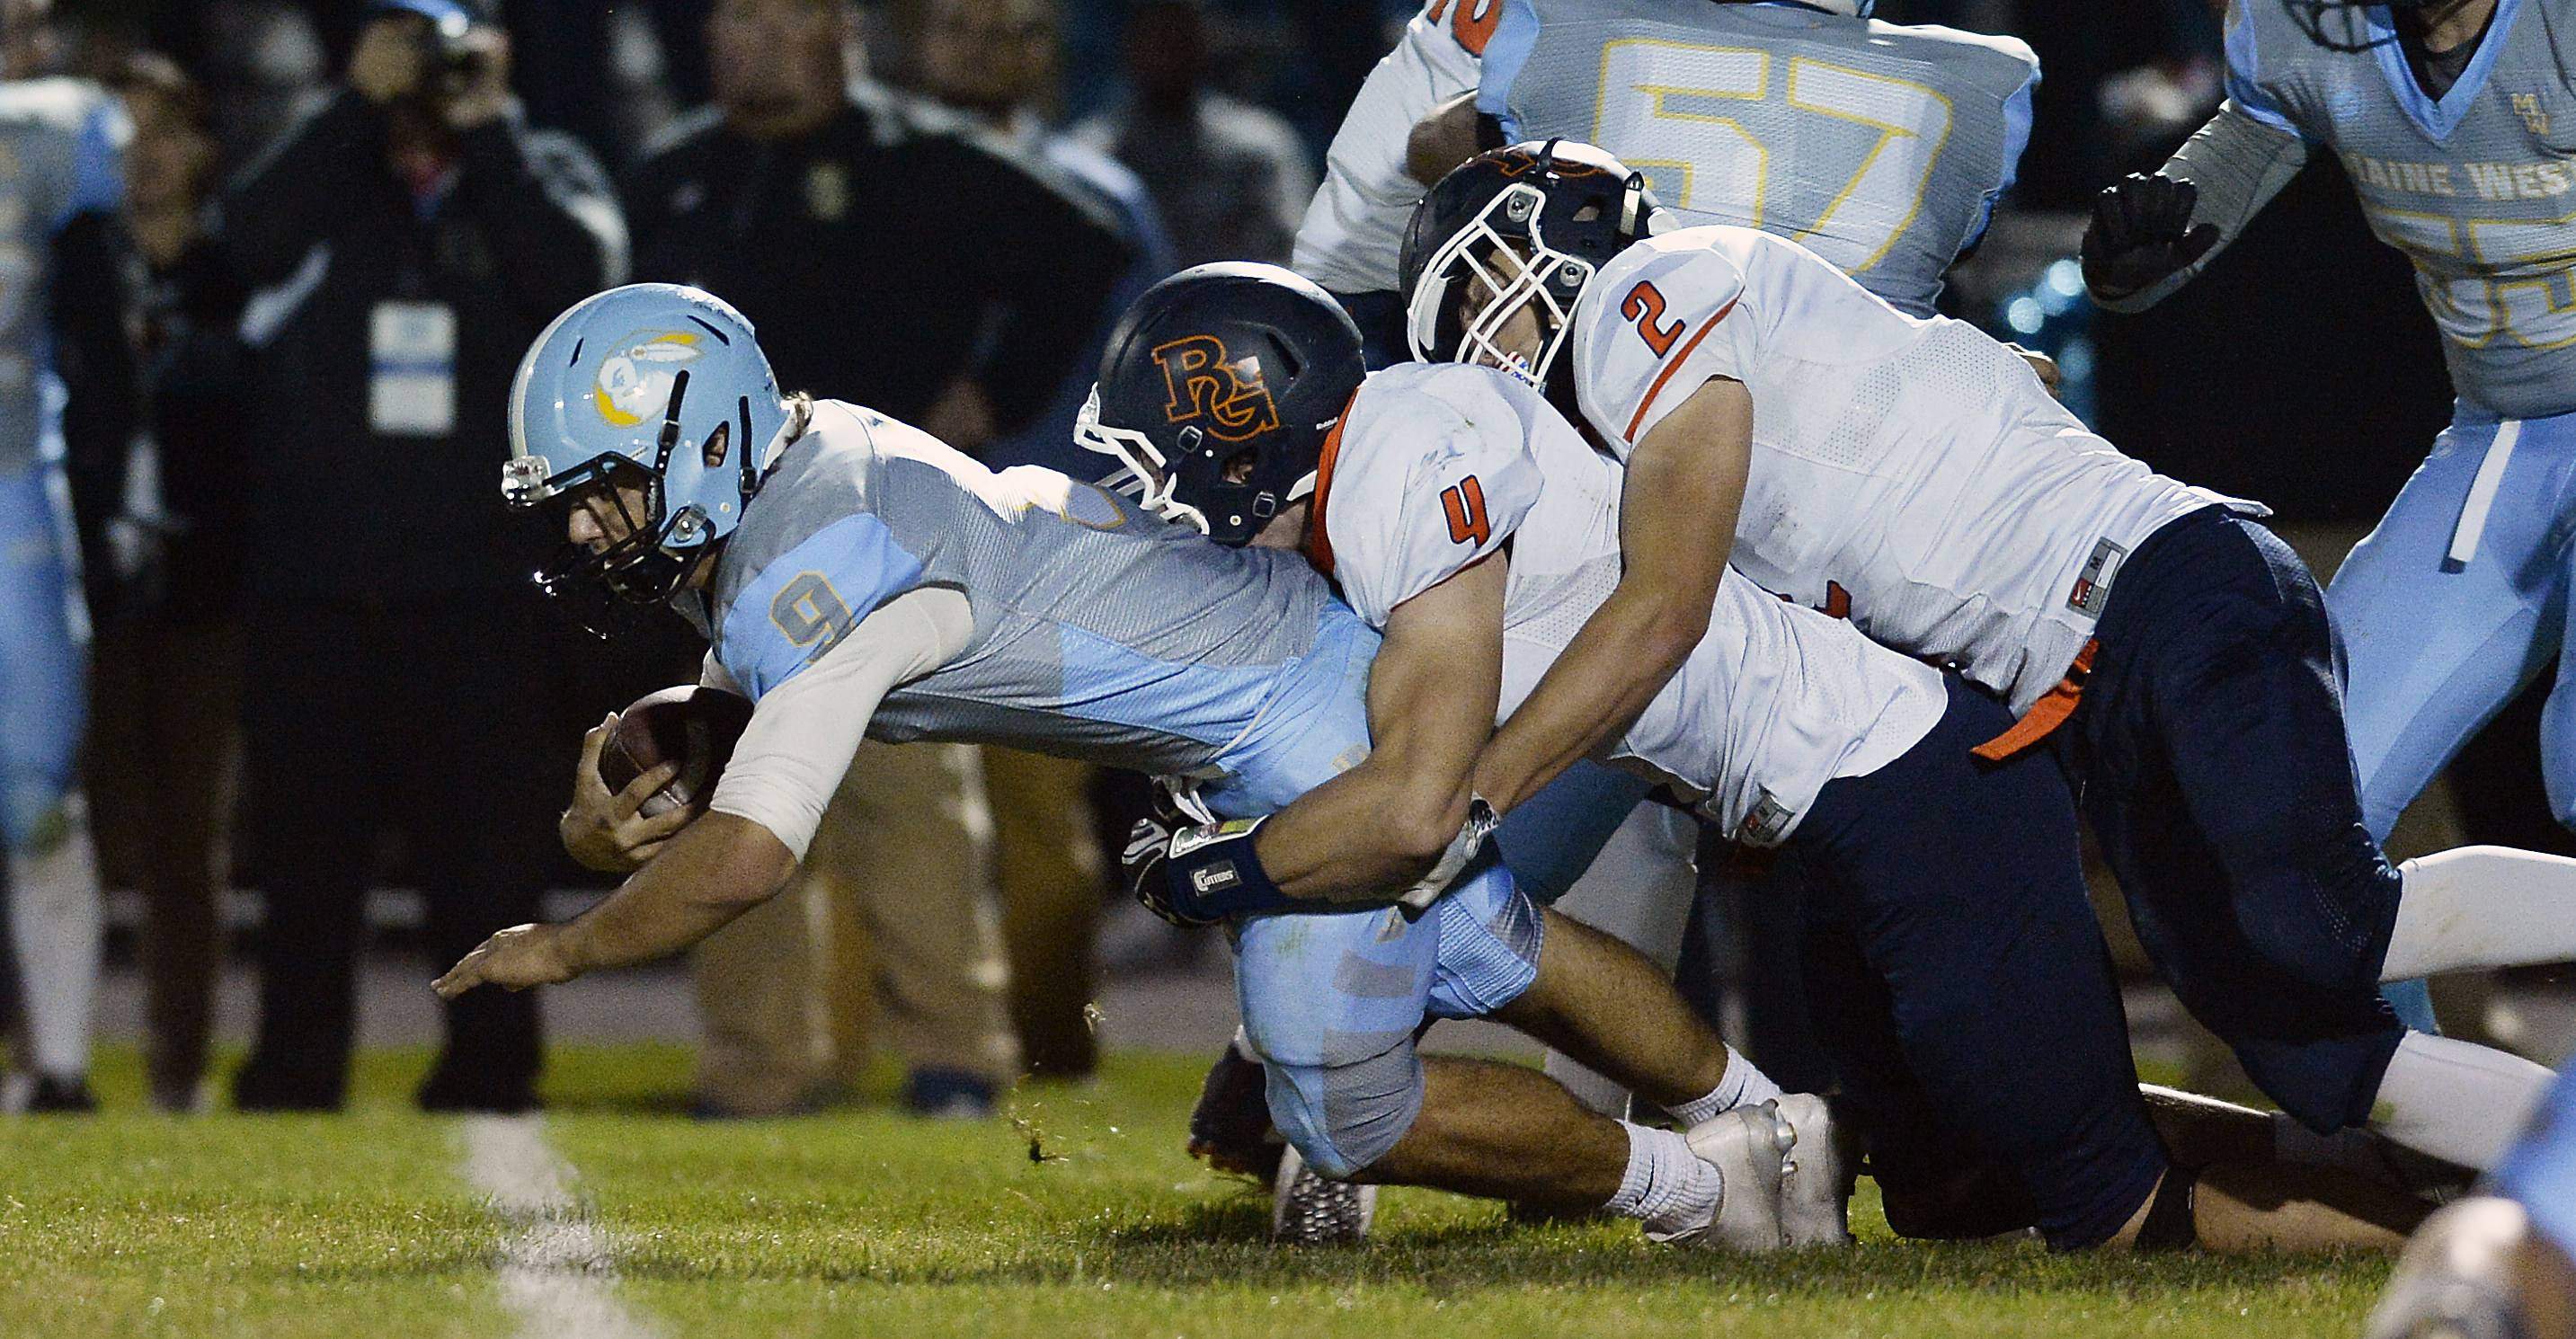 Buffalo Grove's Justin Gold and Tom Trieb bring down Maine West's George Markakis last season. The hard-hitting Trieb, bound for NIU, helps lead the way for the Bison at linebacker and running back this year.